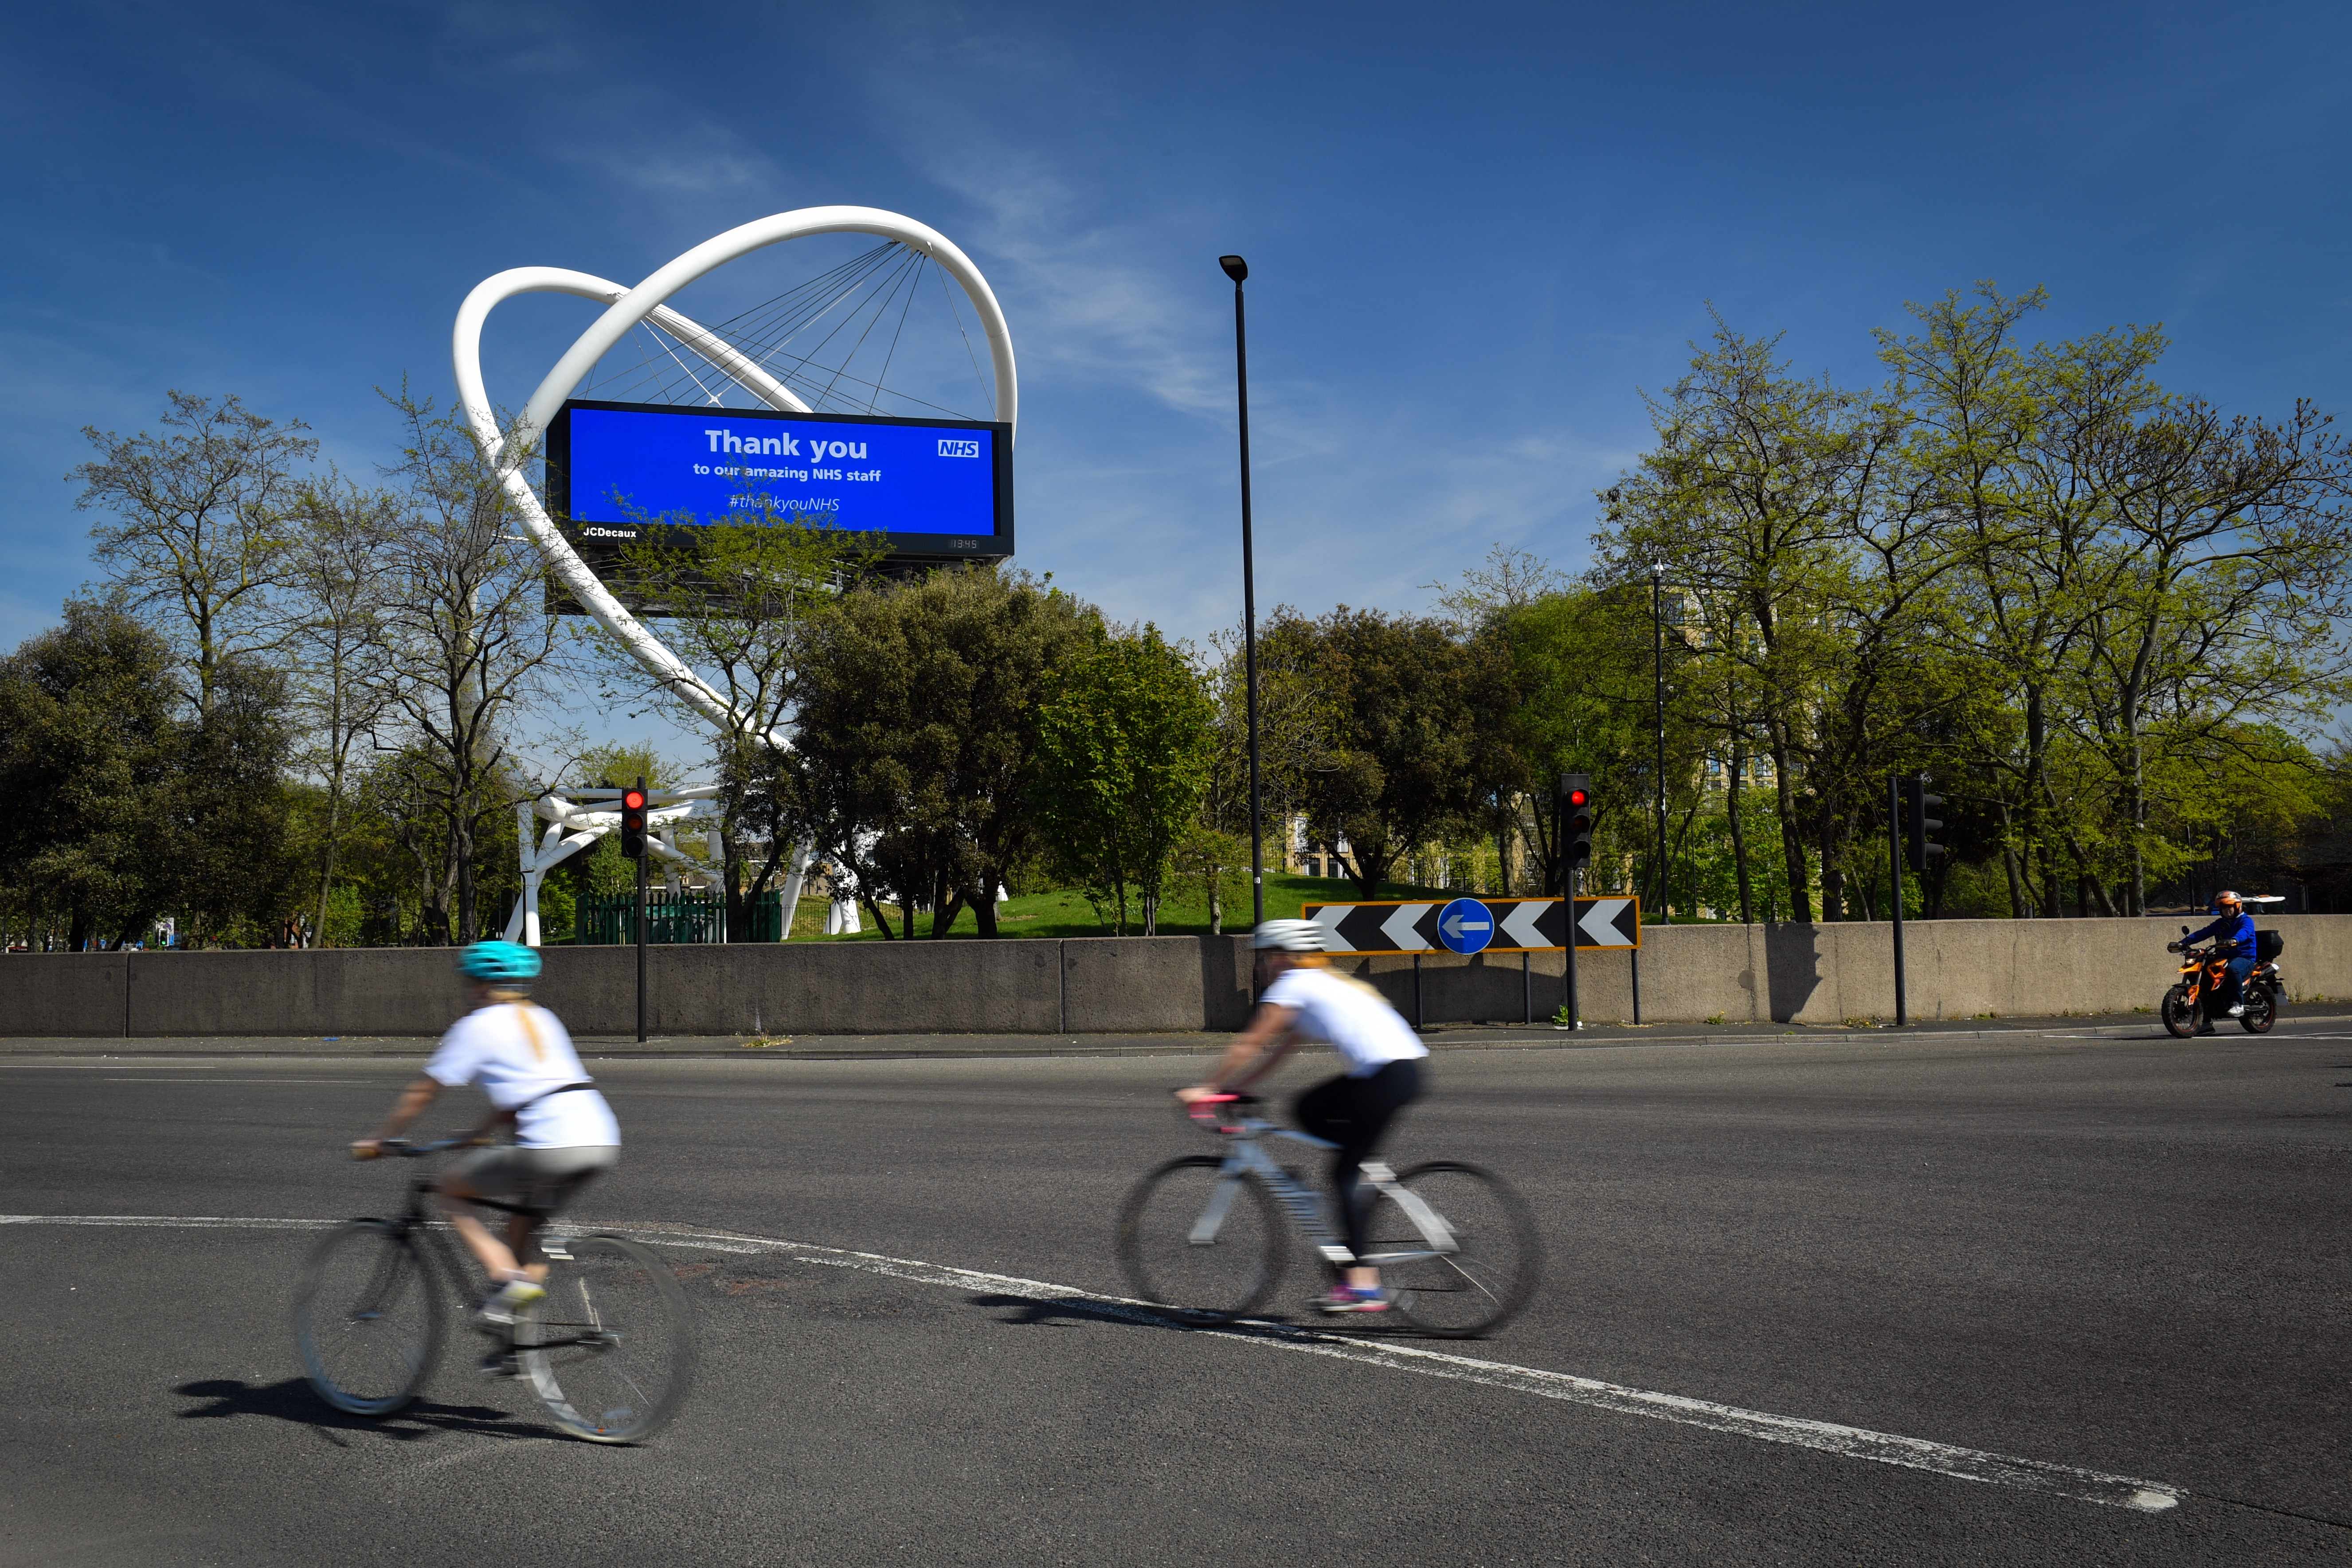 A large display thanking the NHS at Wandsworth roundabout as the UK continues in lockdown to help curb the spread of the coronavirus.